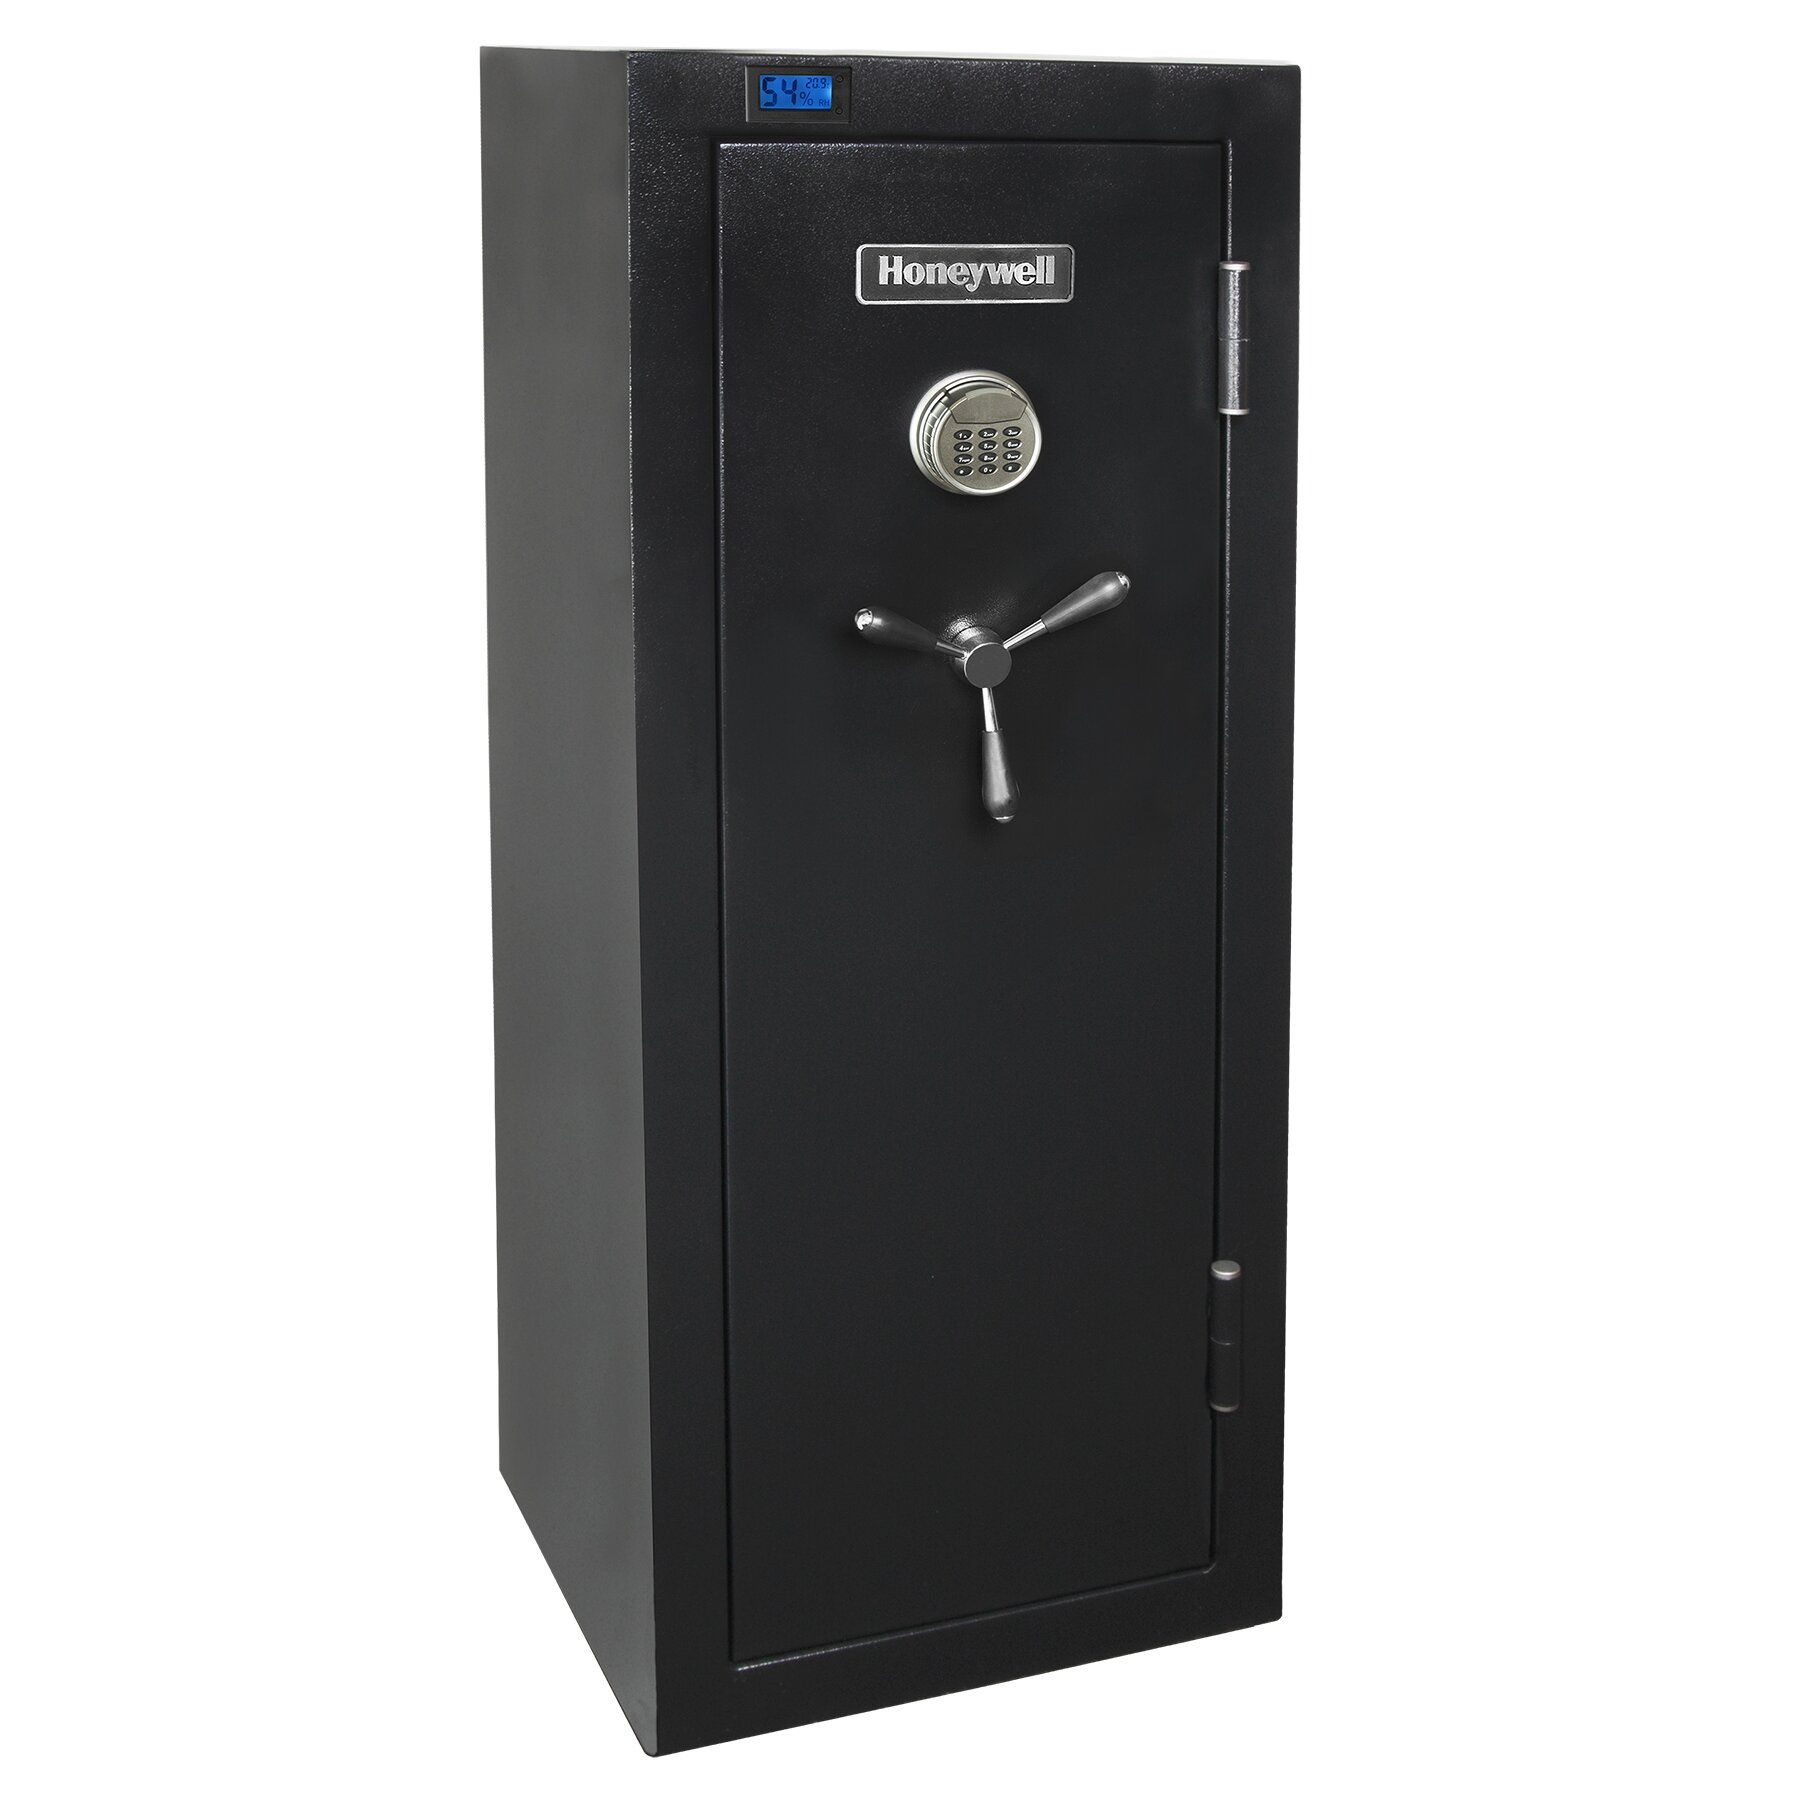 Honeywell Executive Digital Lock Gun Safe Amp Reviews Wayfair